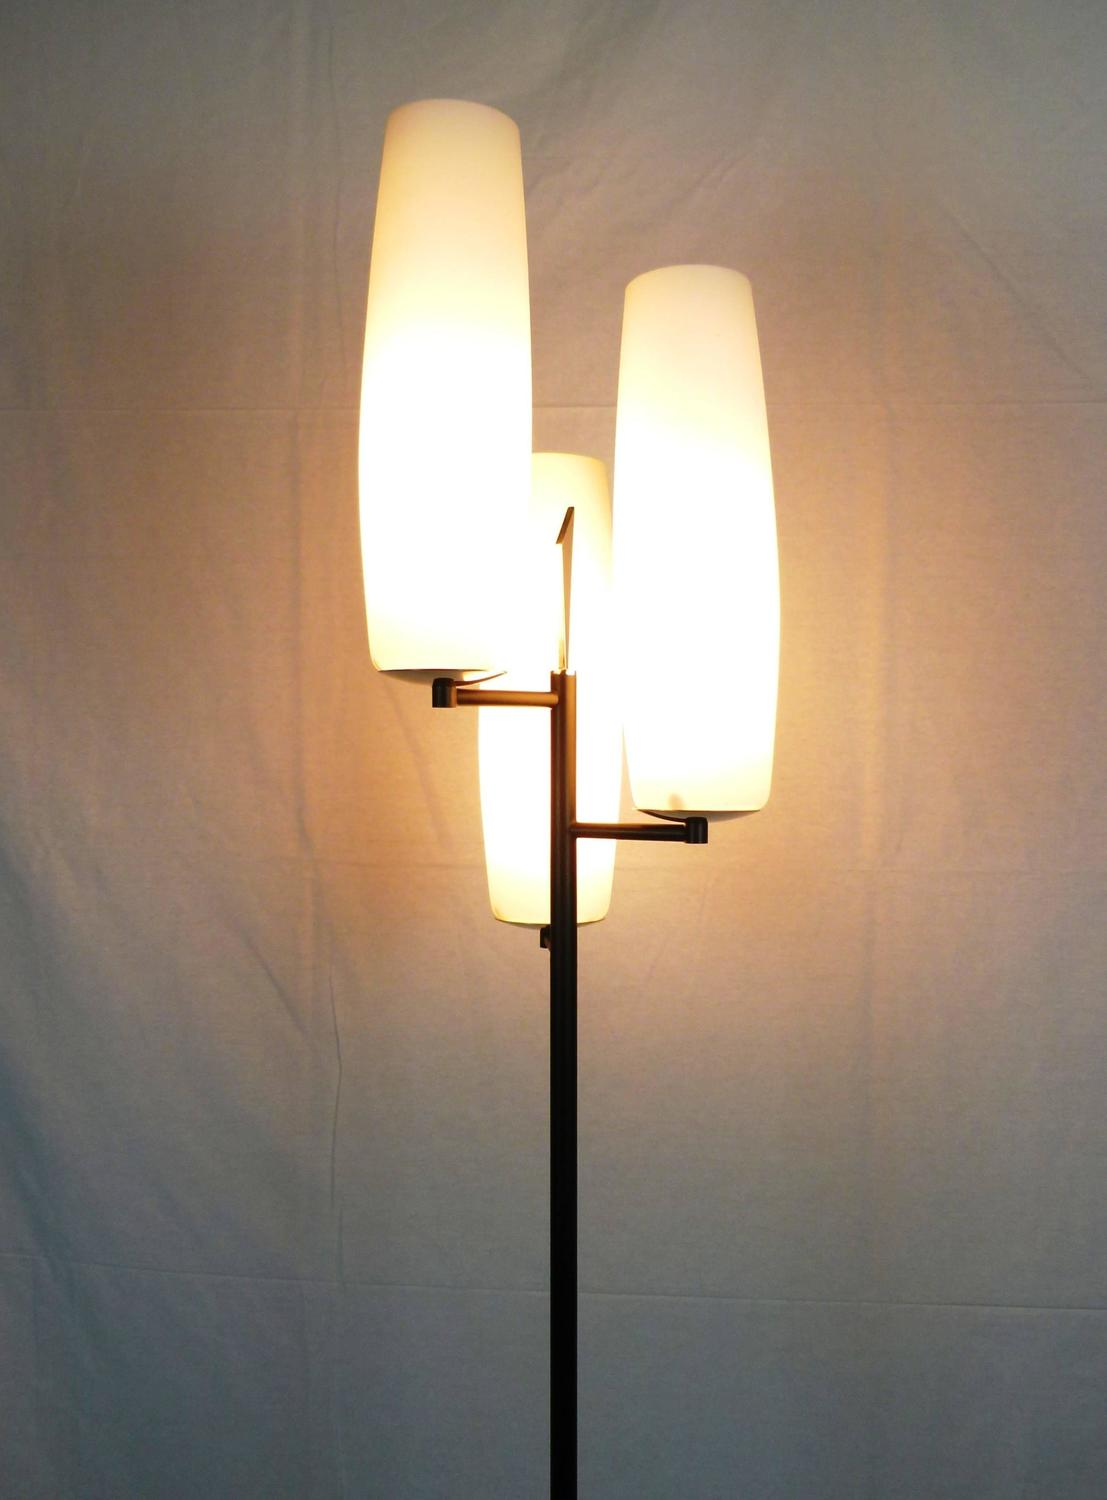 Triple Lighting 1950s Floor Lamp By Maison Lunel For Sale